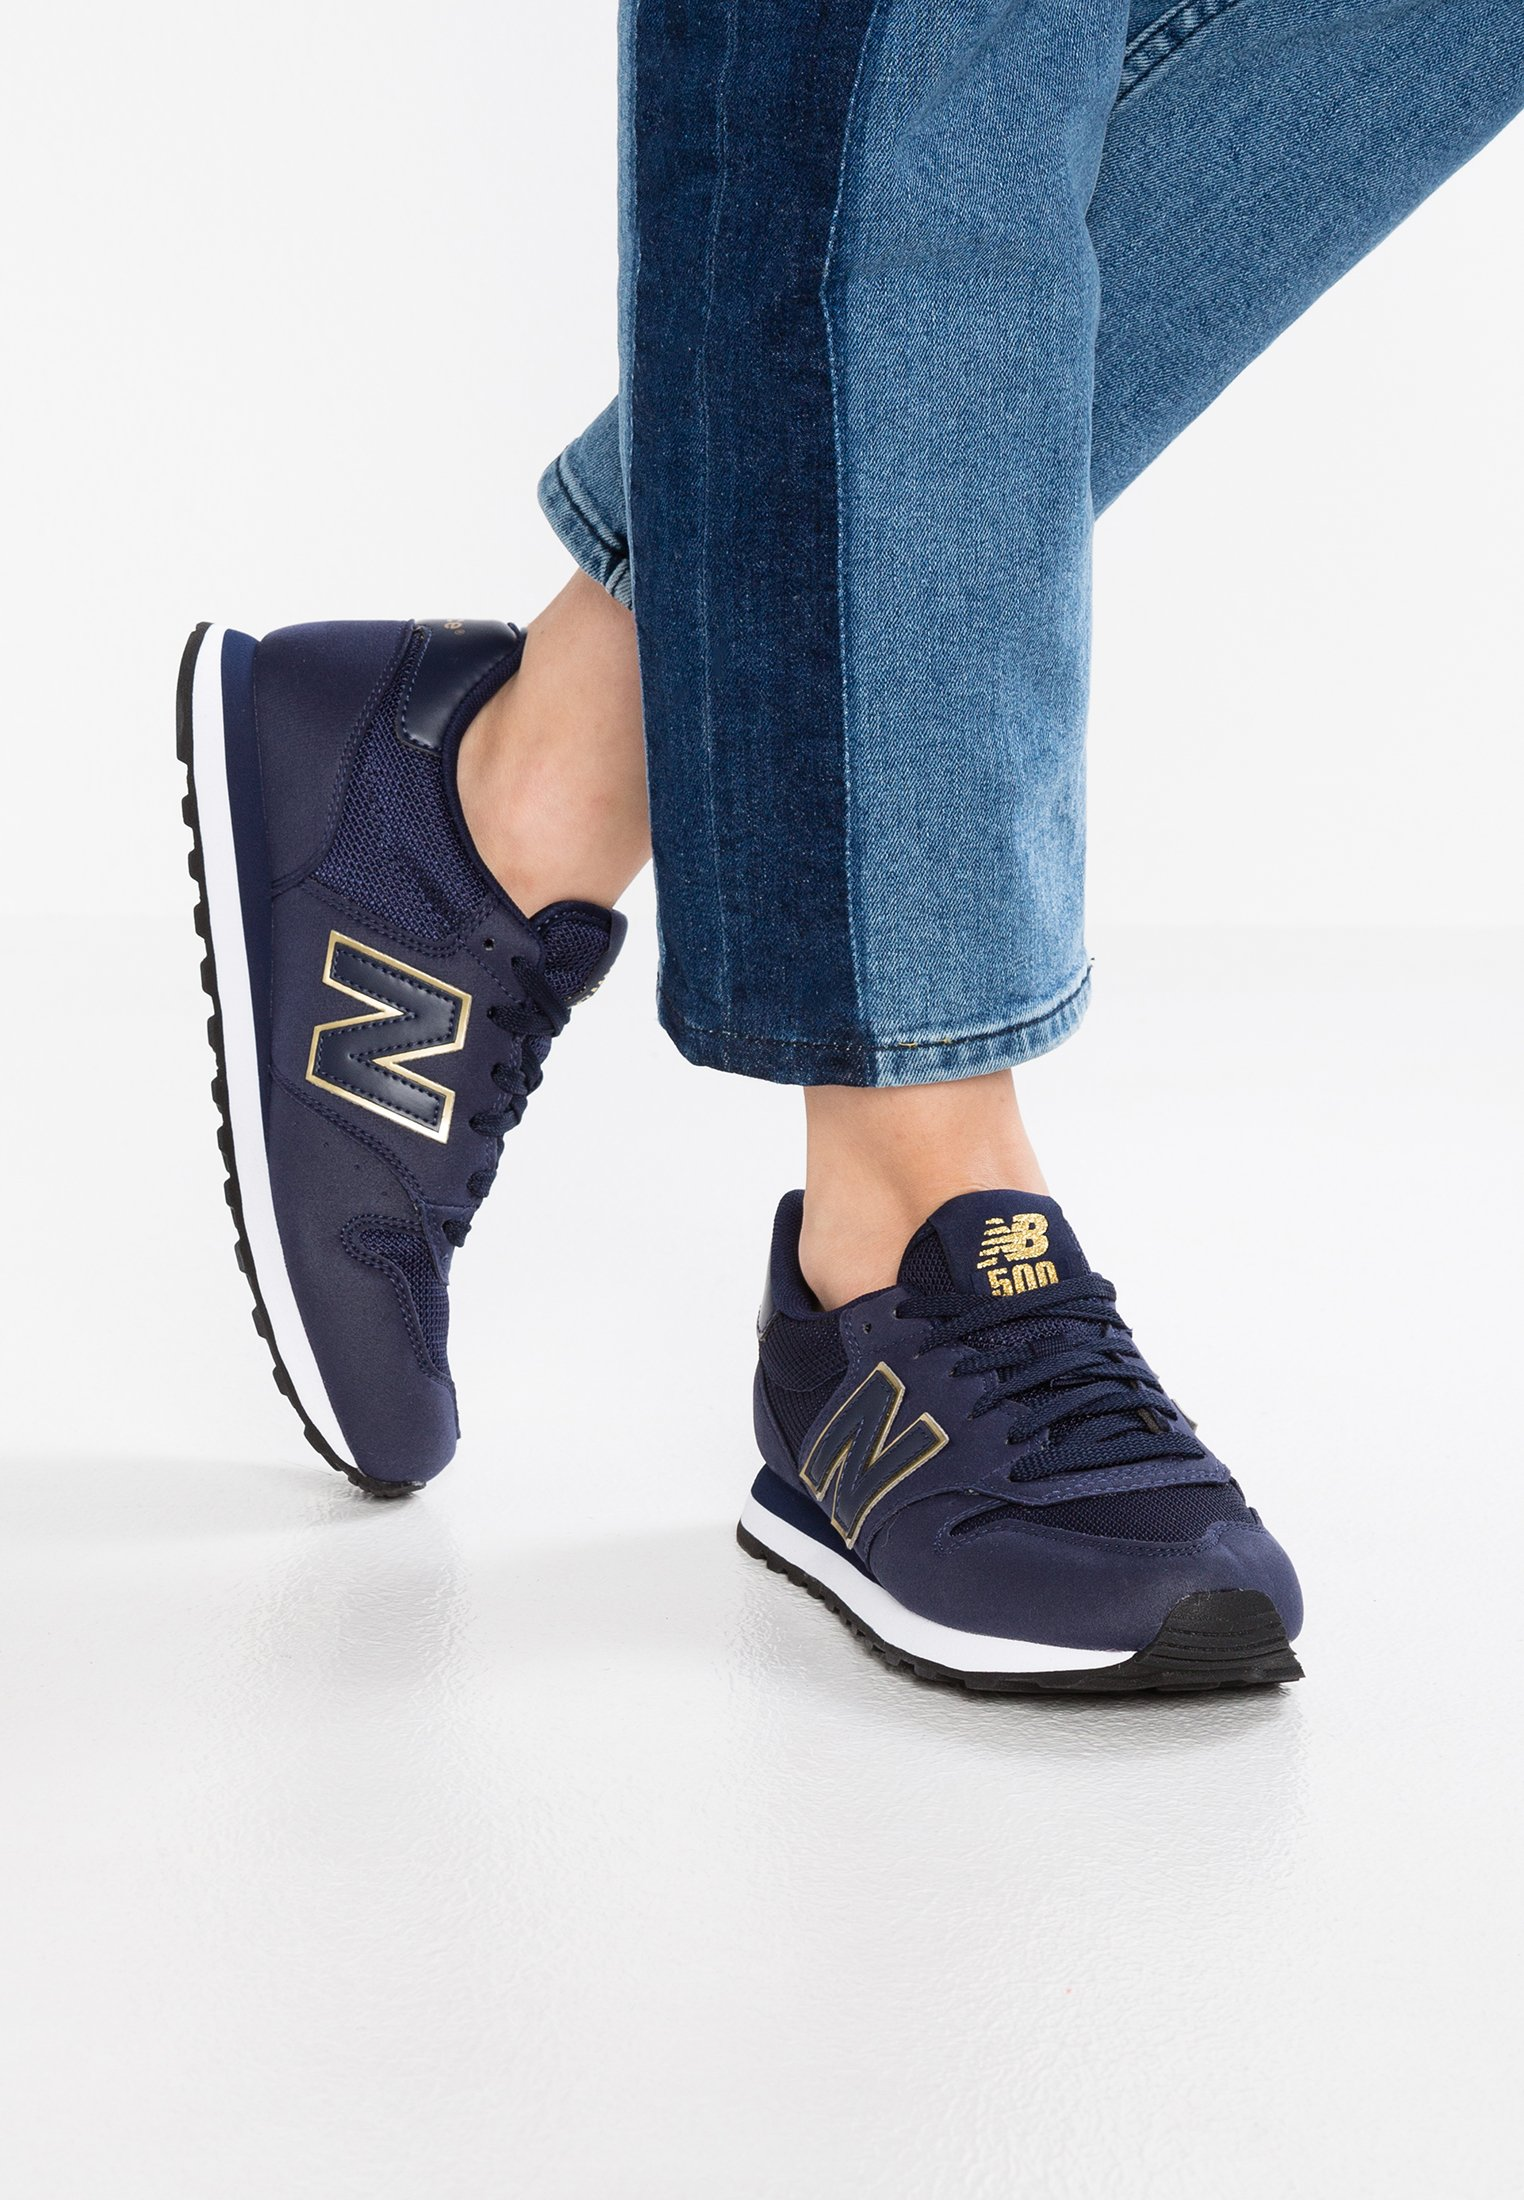 New Balance | Buy New Balance online on Zalando